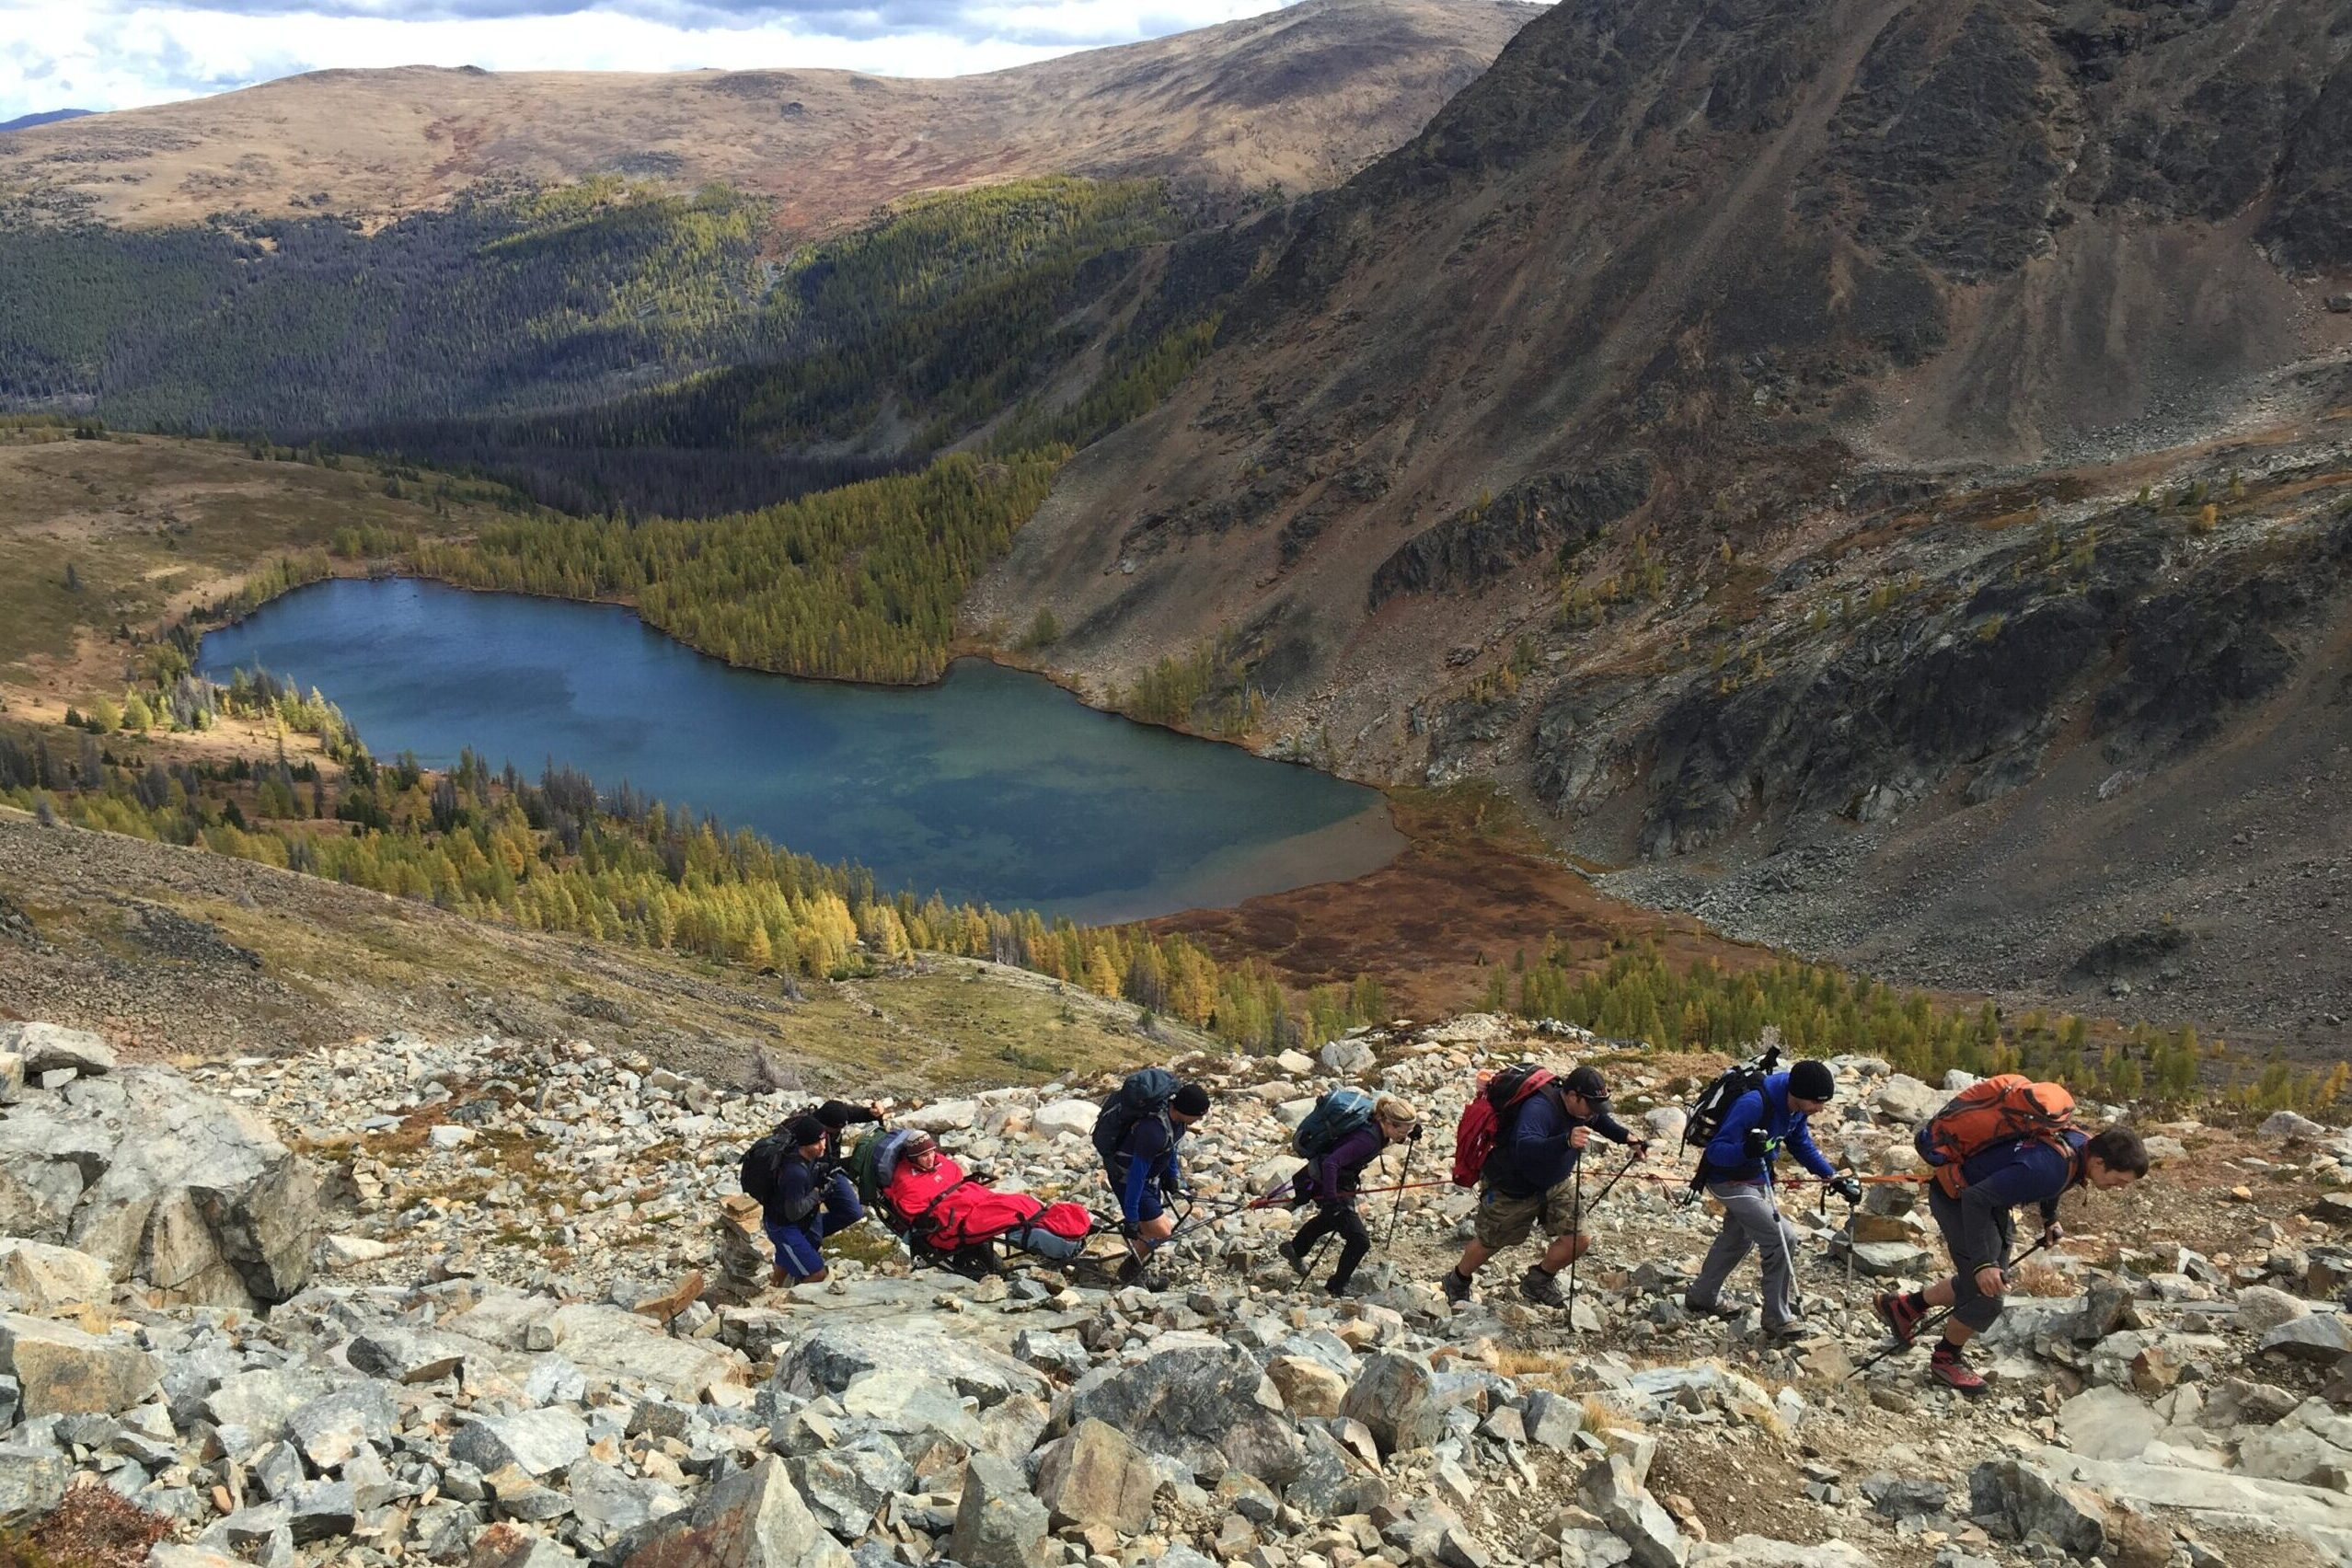 Seven hikers in rocky terrain. One is using a trailrider. There is a blue lake in the background.